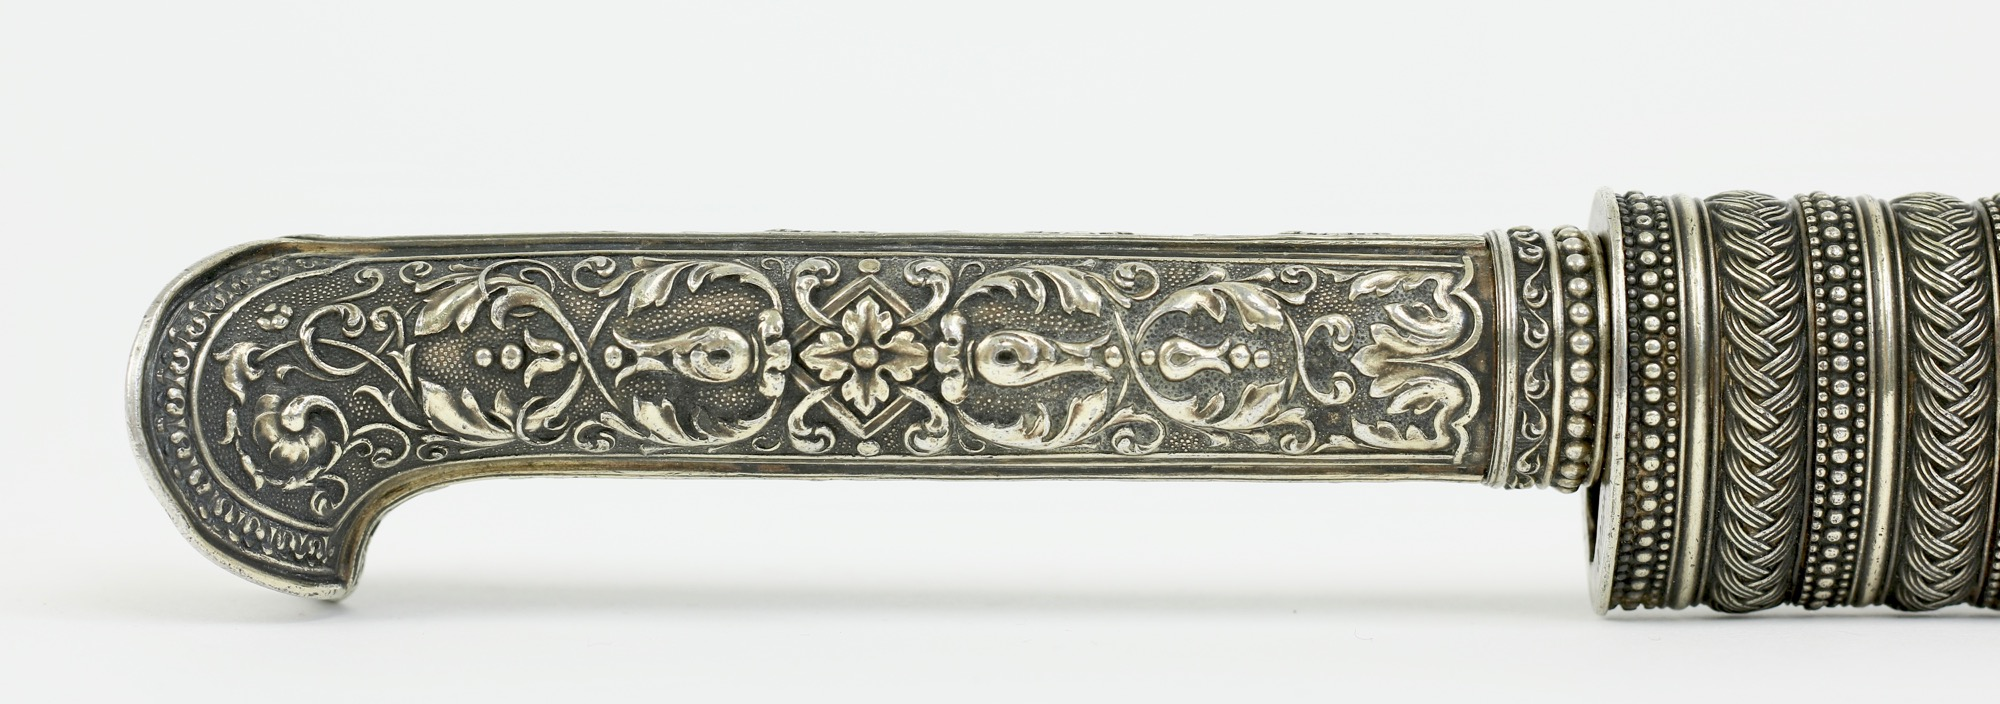 An Ottoman style knife made by Manceaux of Paris